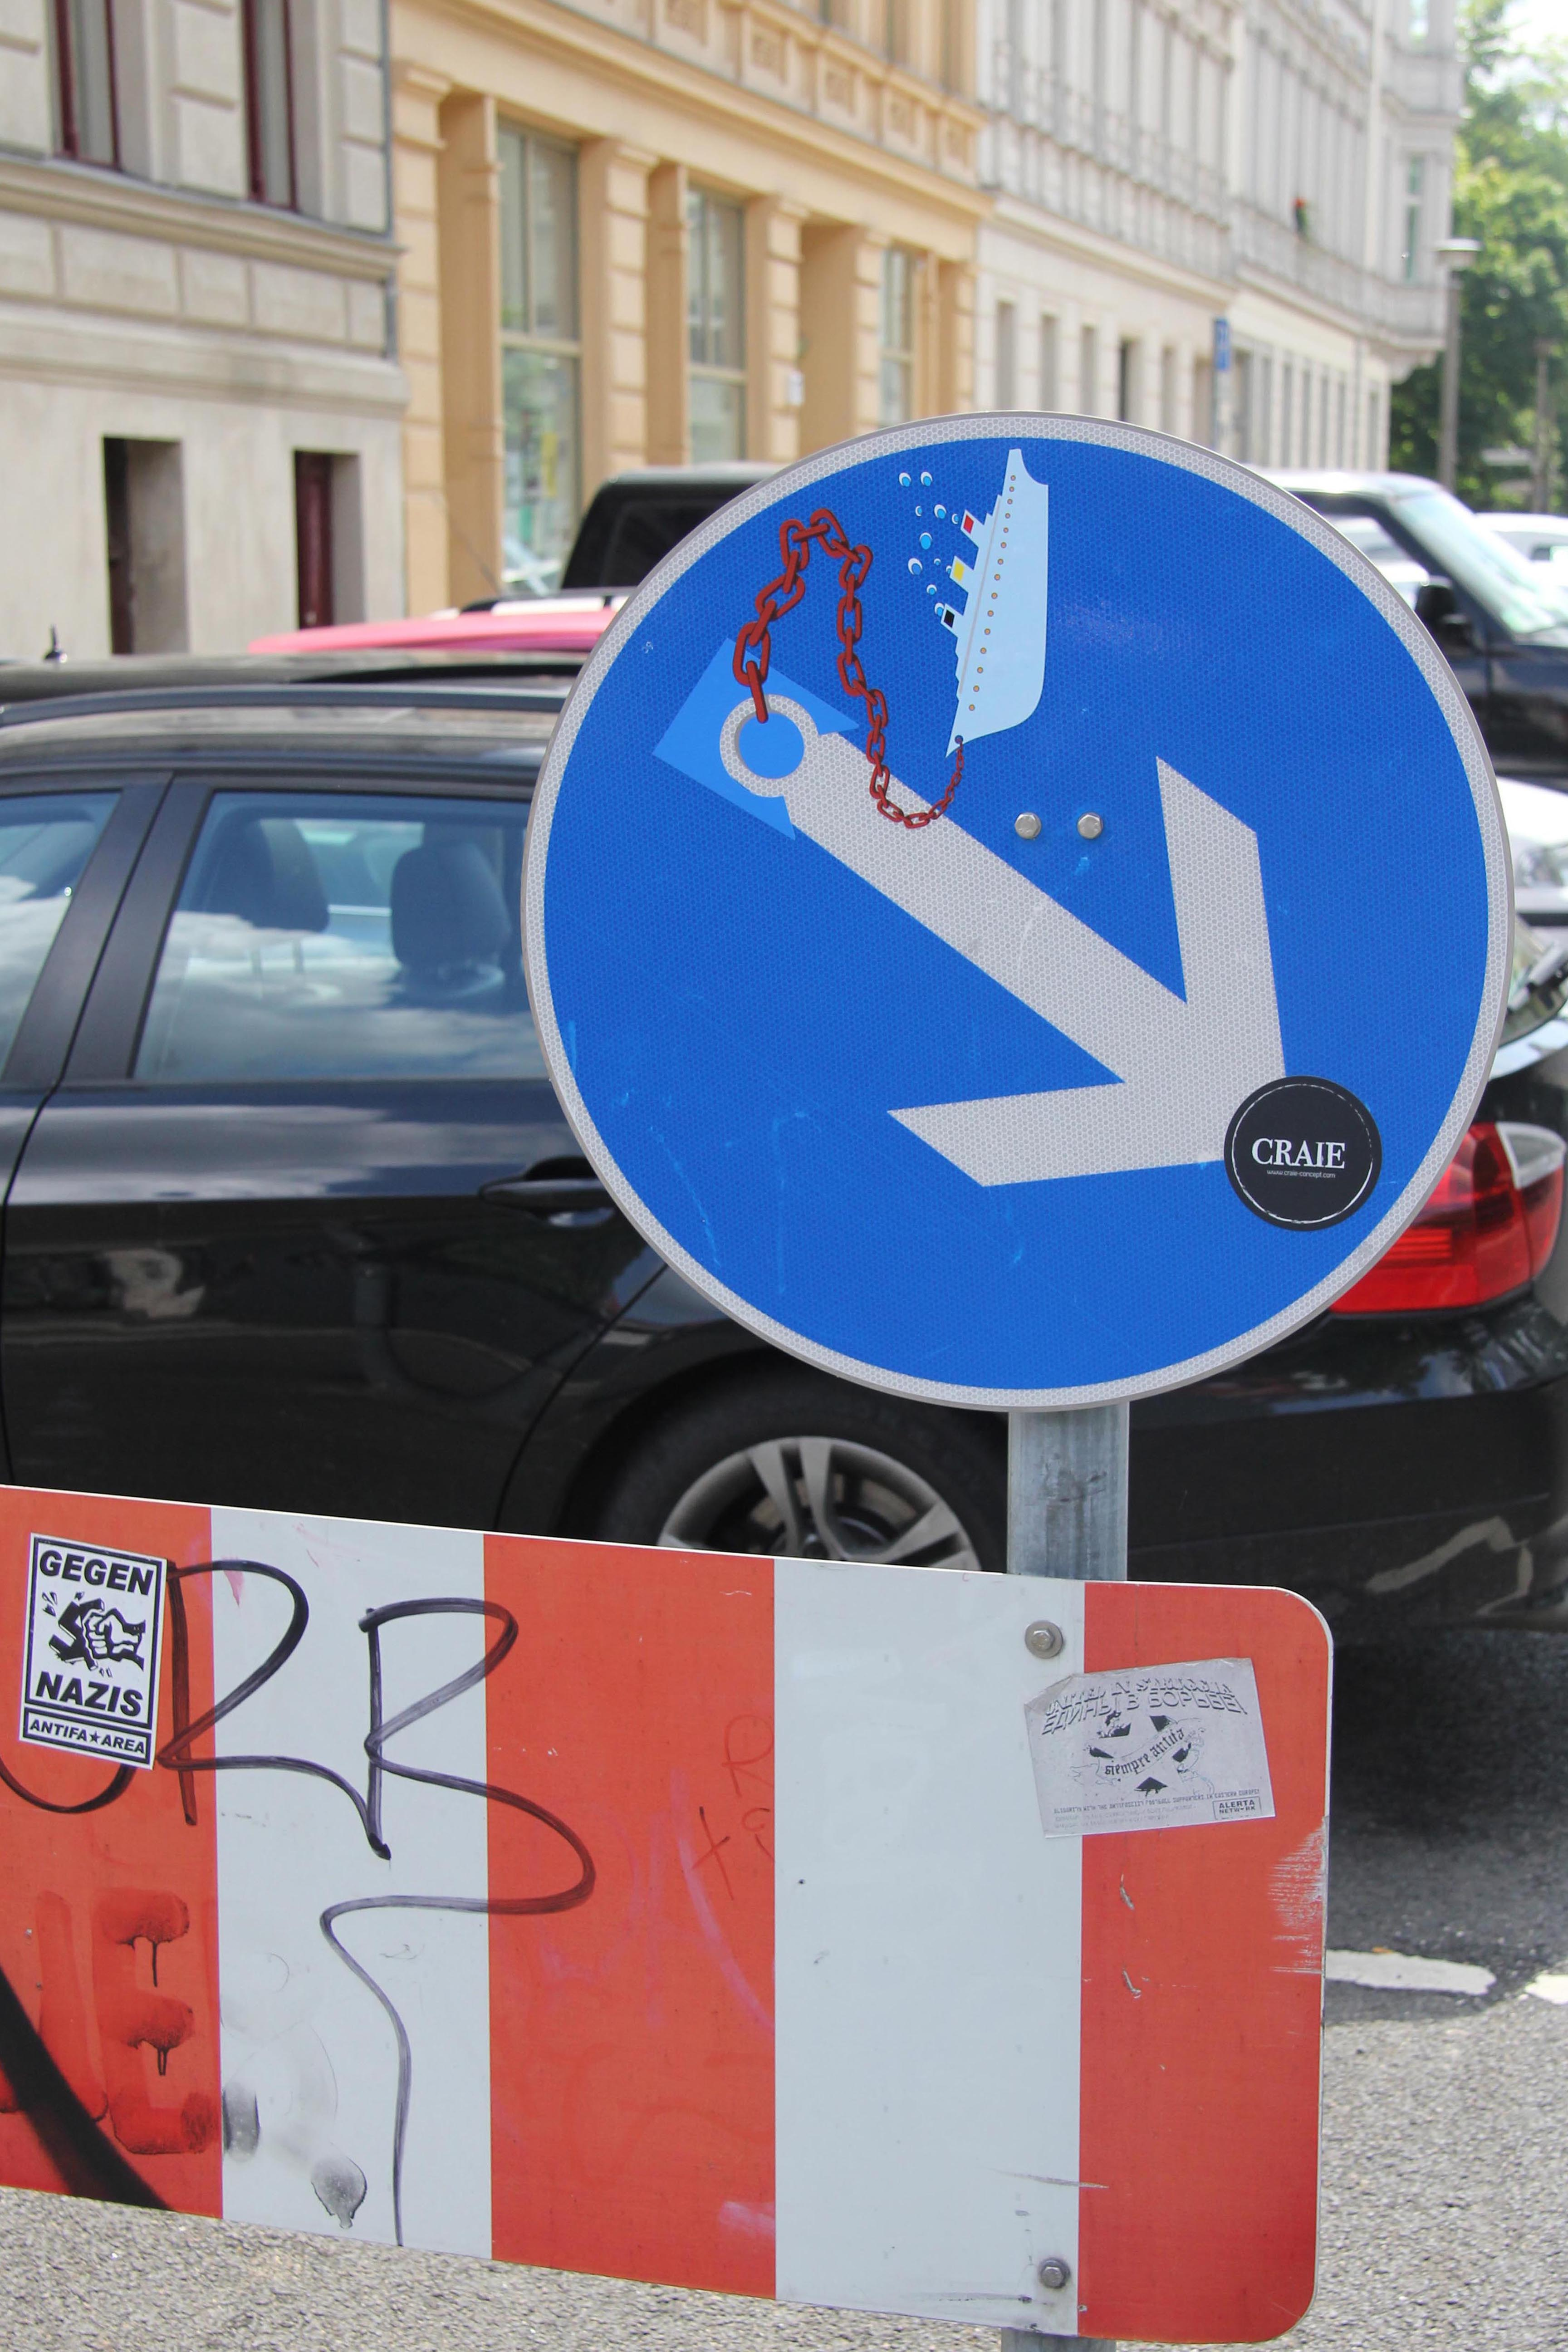 Boat - Street Art by CLET (Clet Abraham) on a Keep Right street sign in Berlin